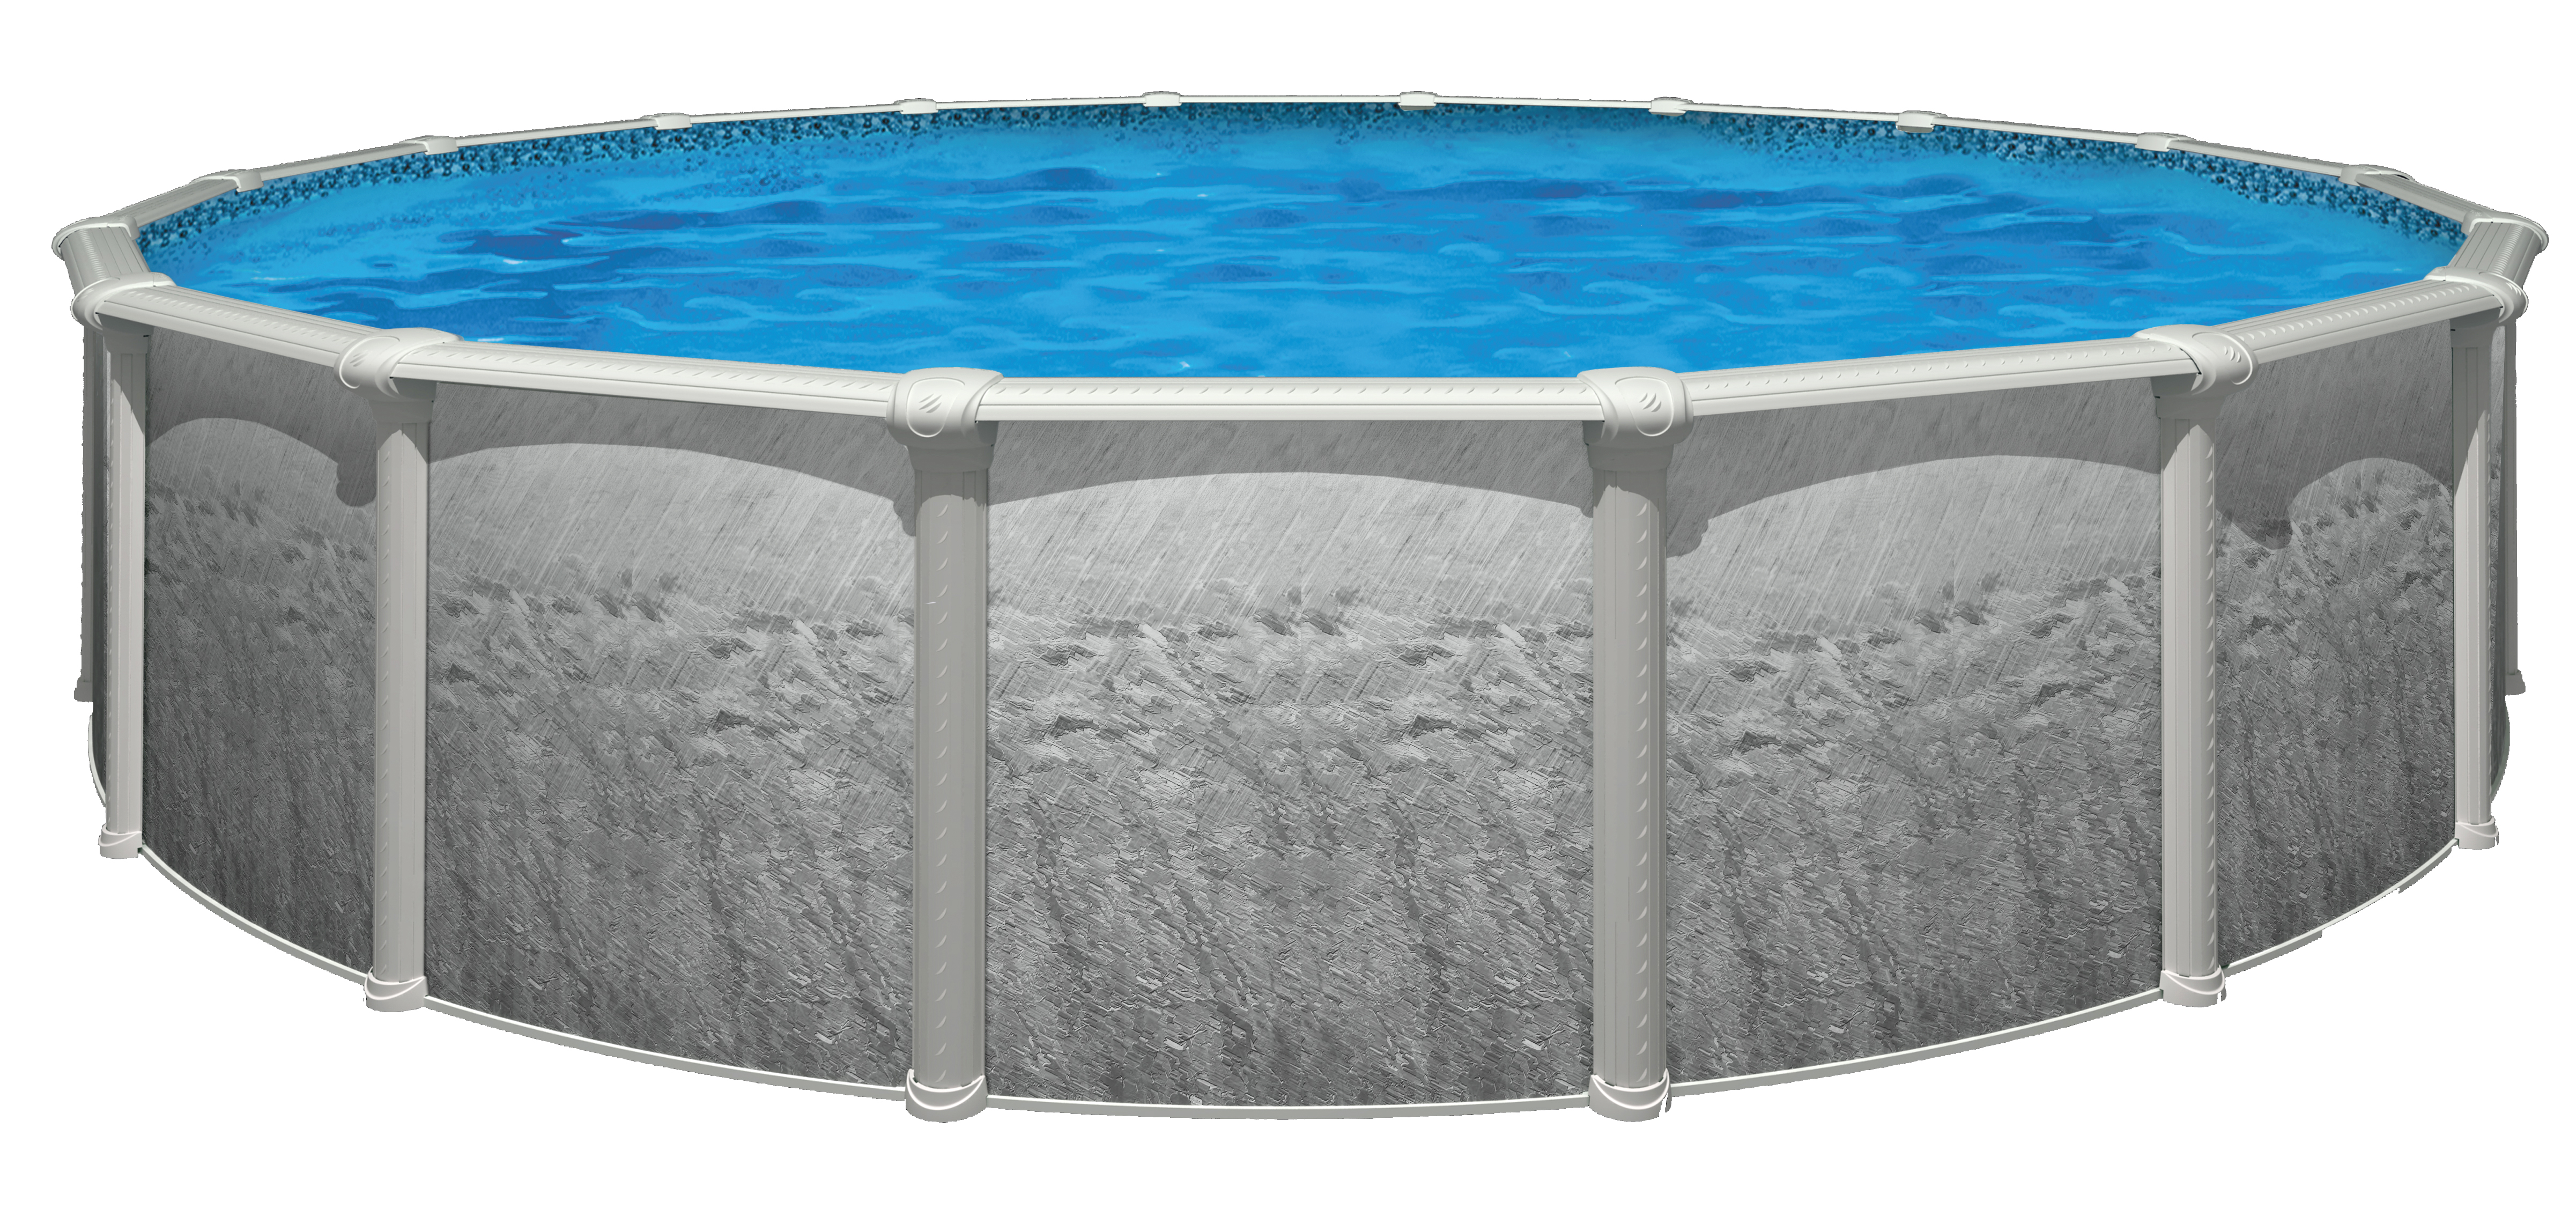 Ground Pools from Pool City